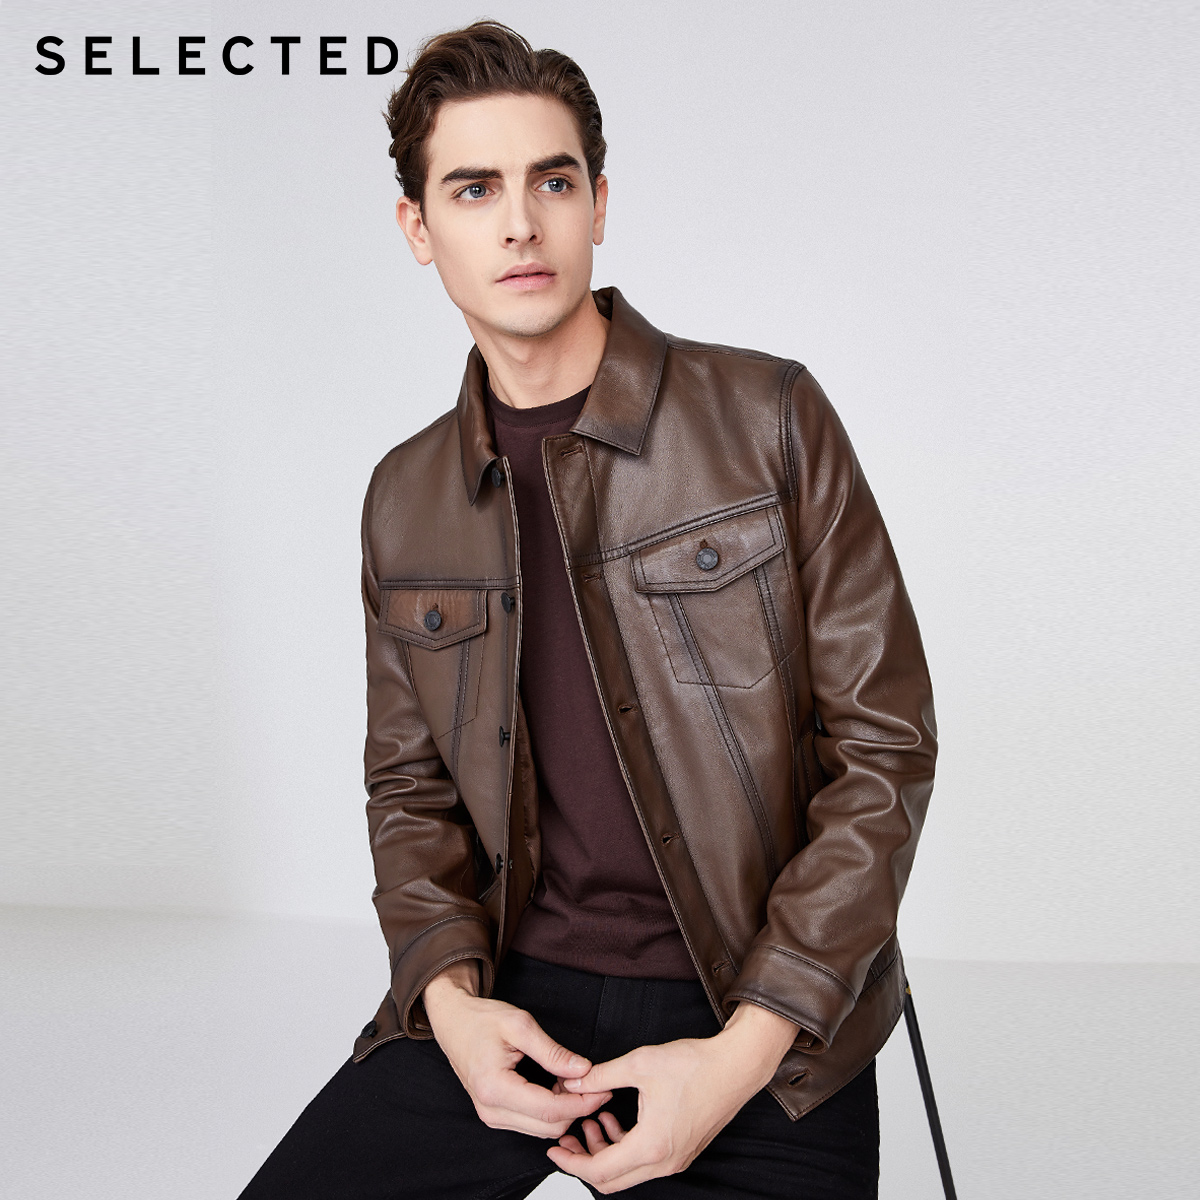 Selected Slade new sheep leather trend casual jacket leather coat men's r420110506